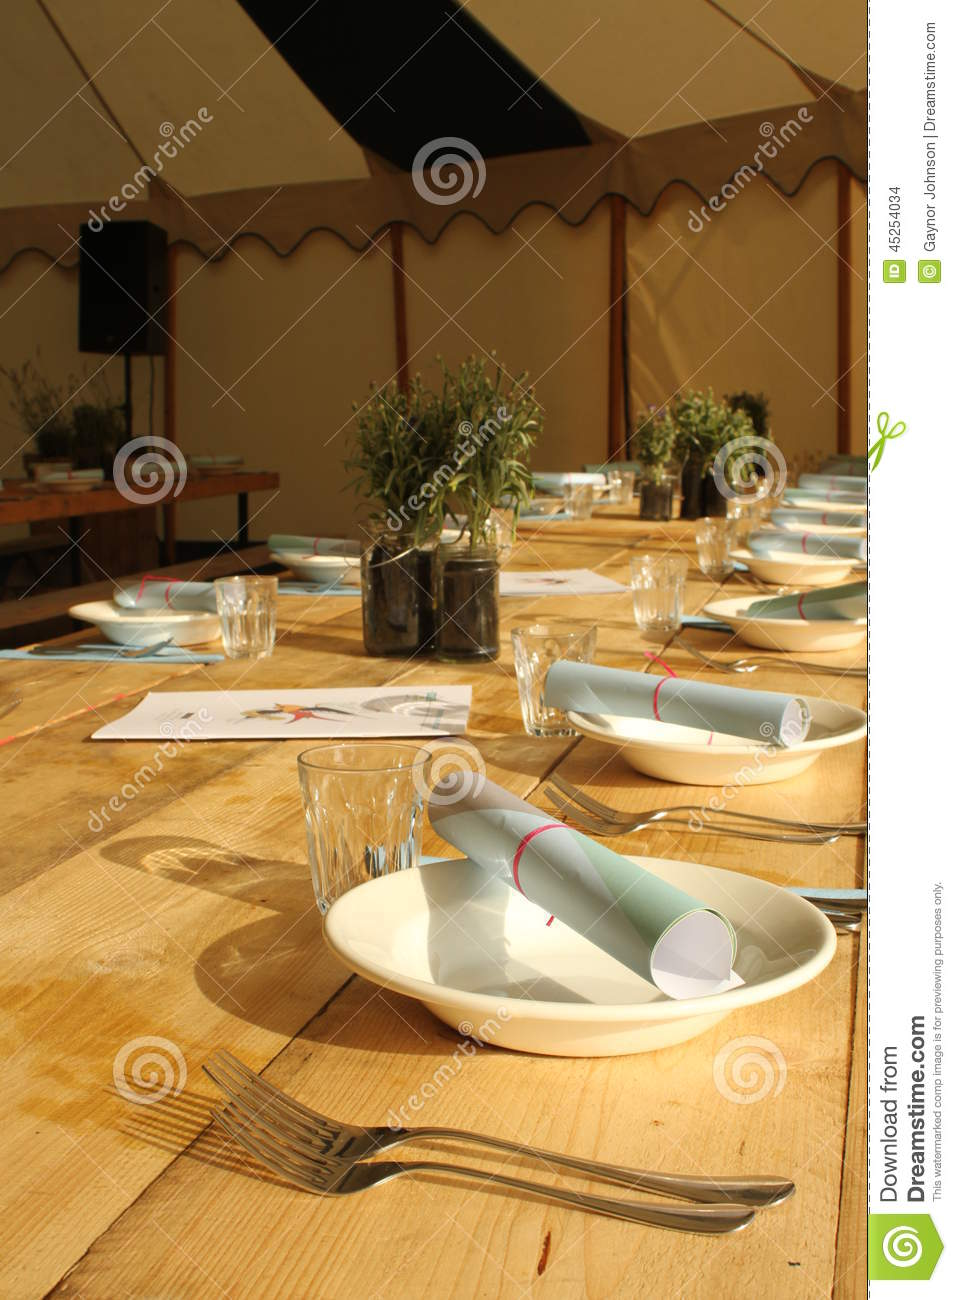 Table de salle manger rustique photo stock image 45254034 for Table de salle a manger rustique